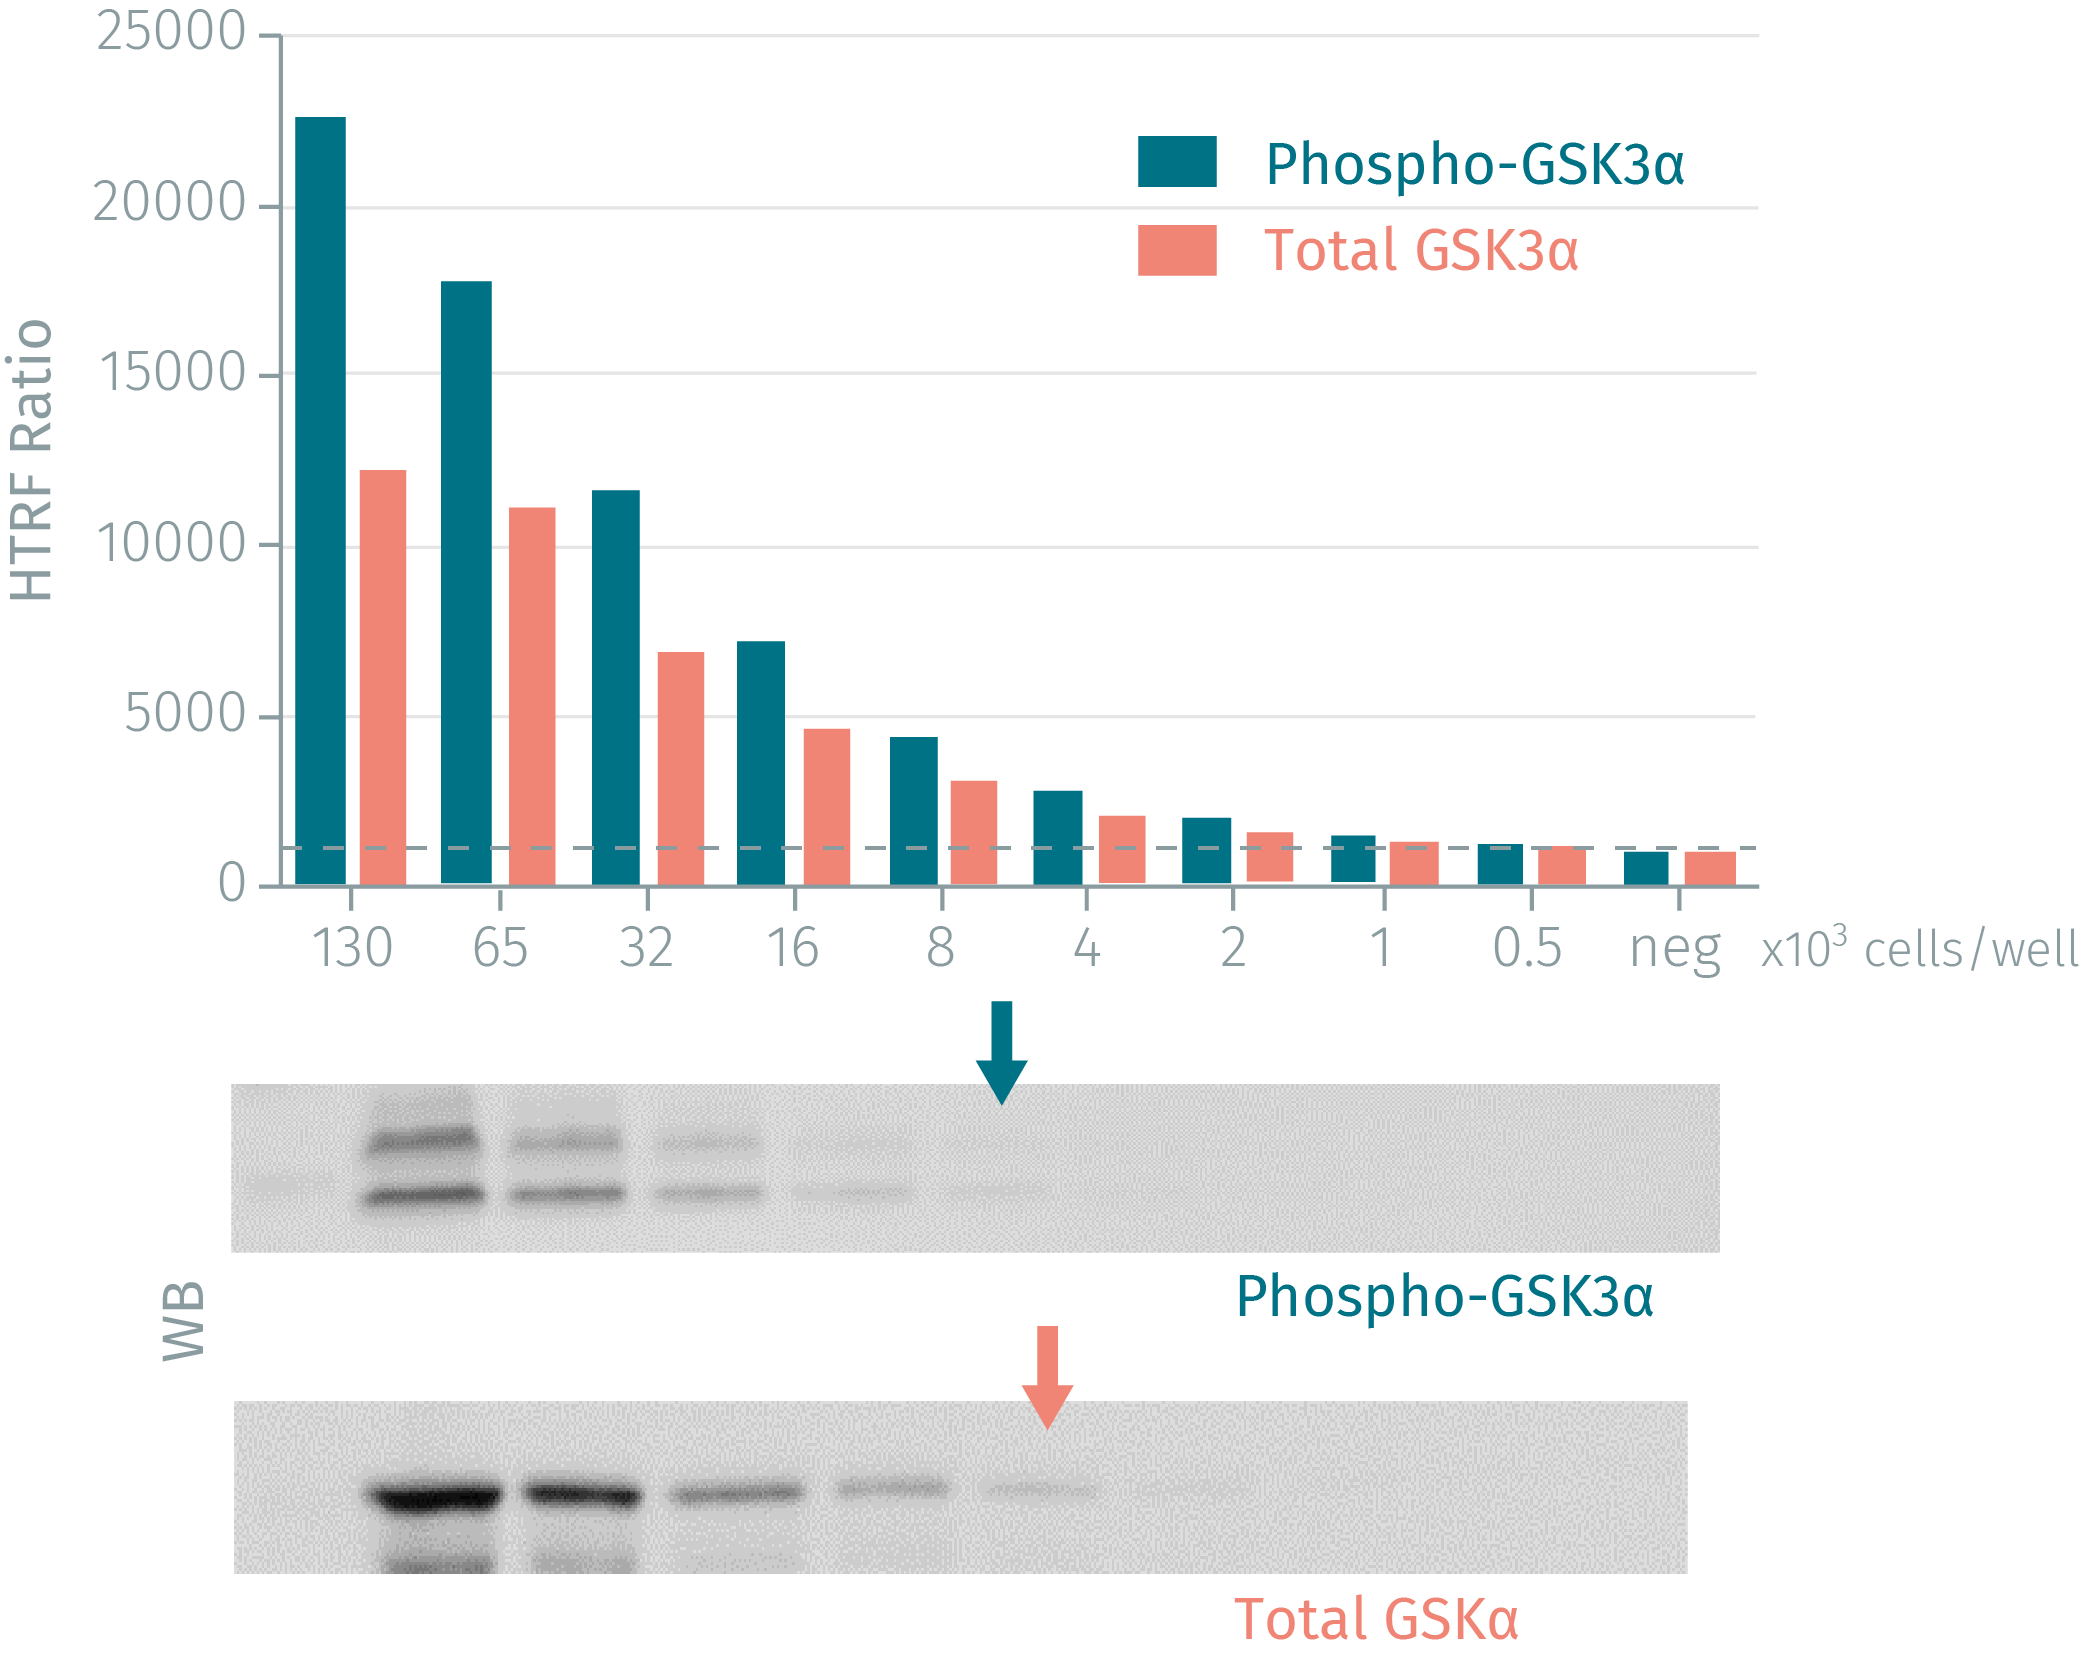 HTRF assay compared to Western Blot using phospho-GSK3a, total-GSK3a